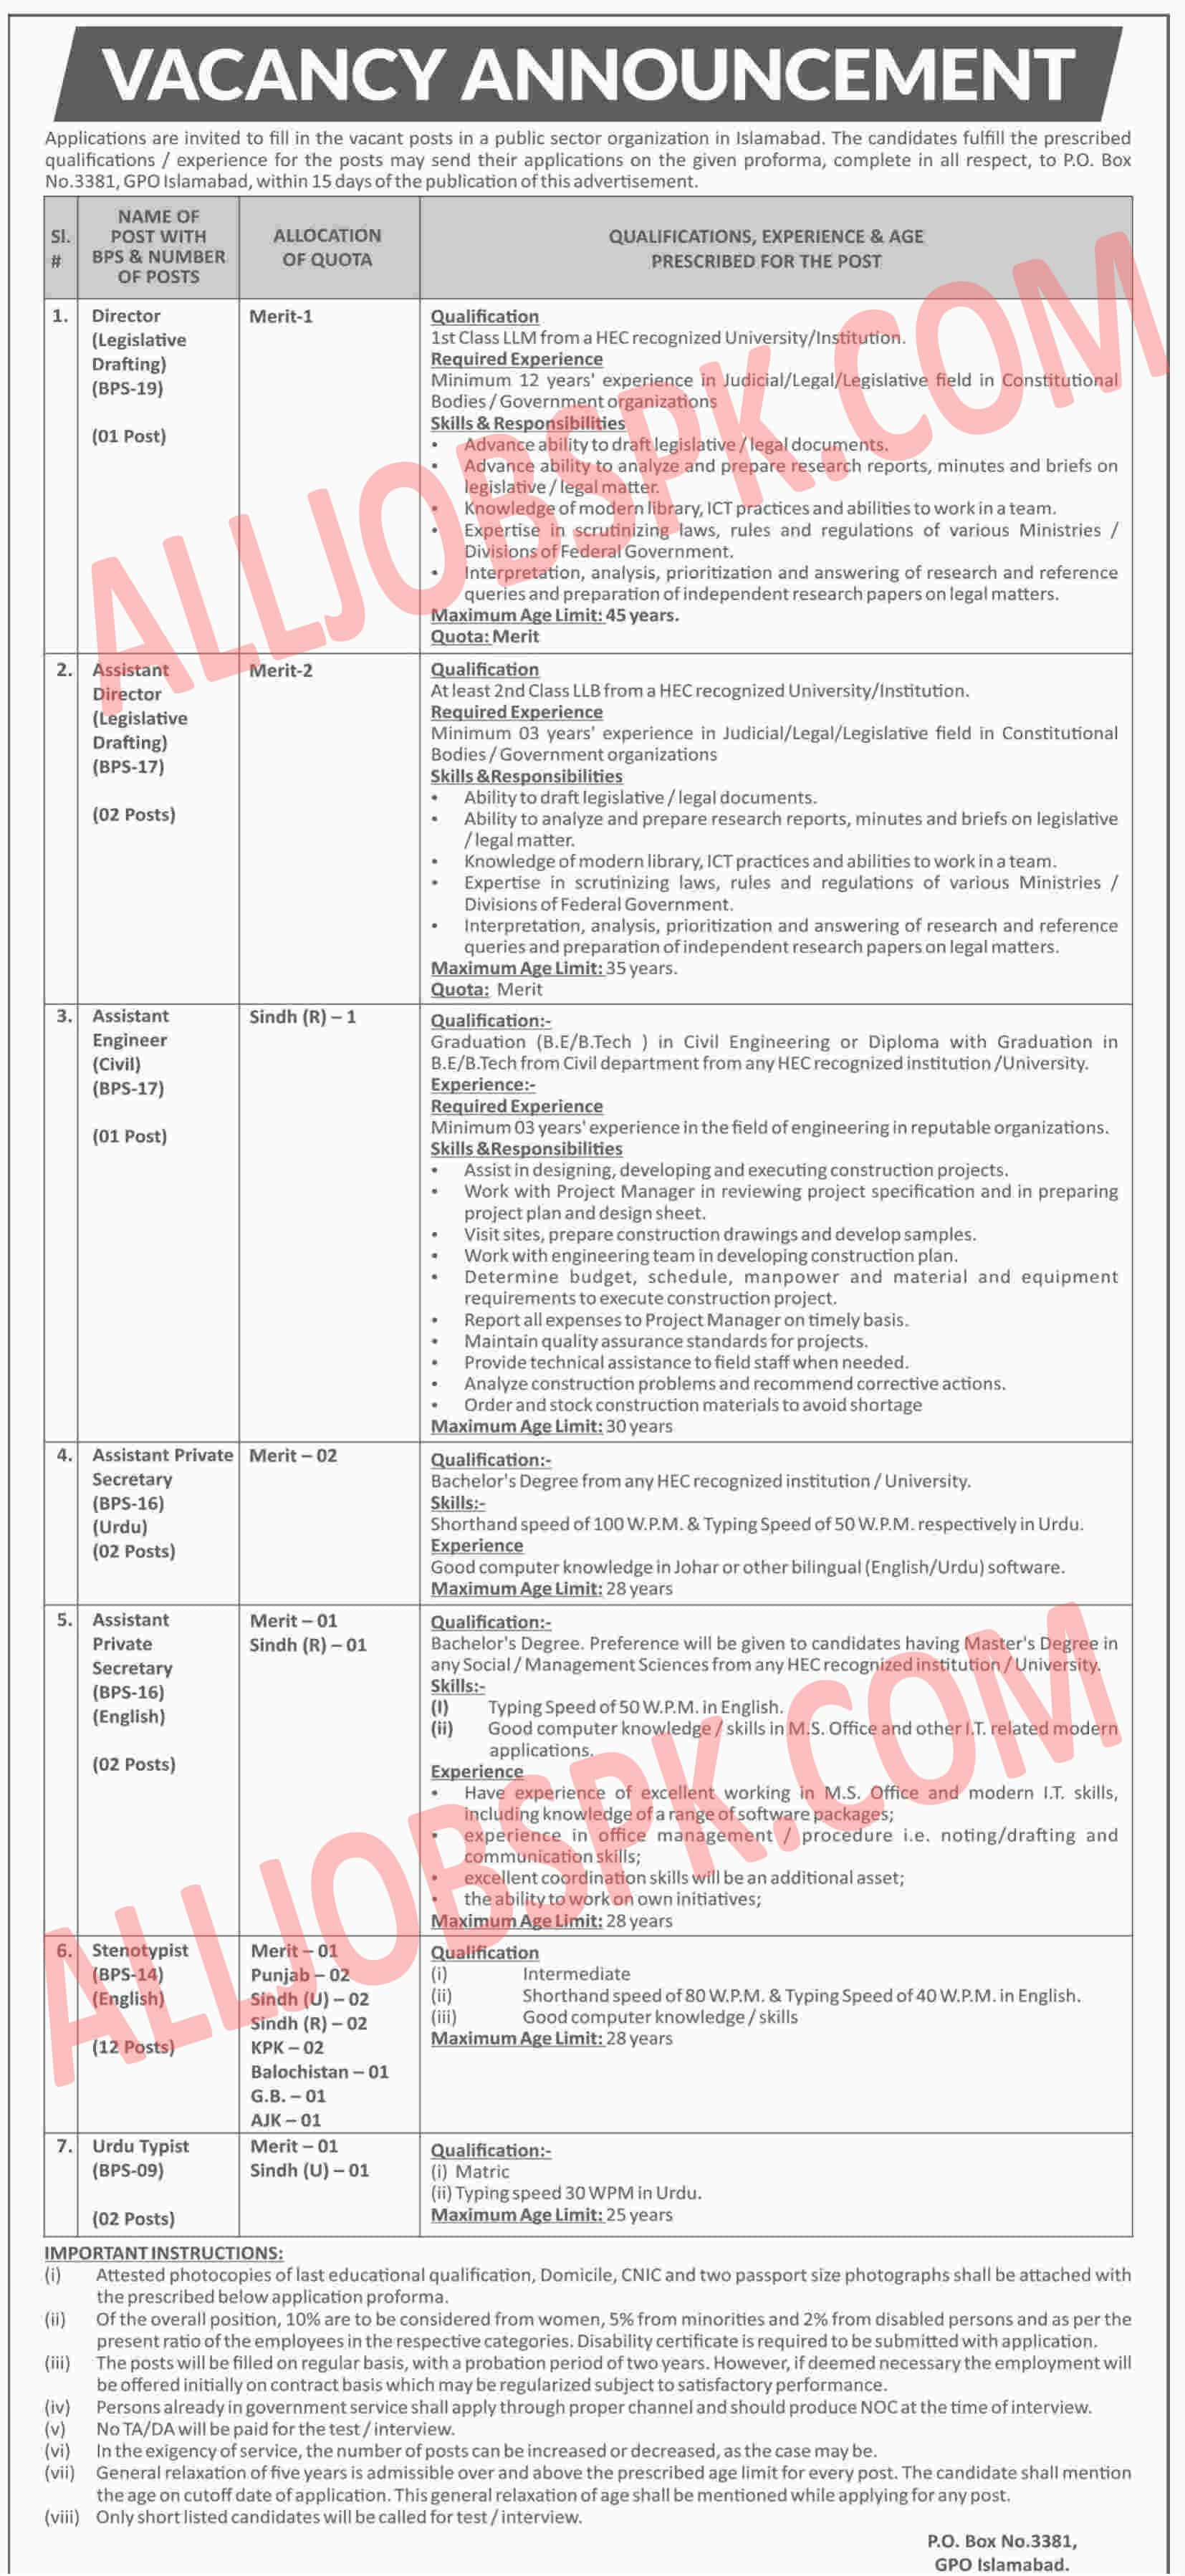 PO Box 3381 Islamabad Jobs